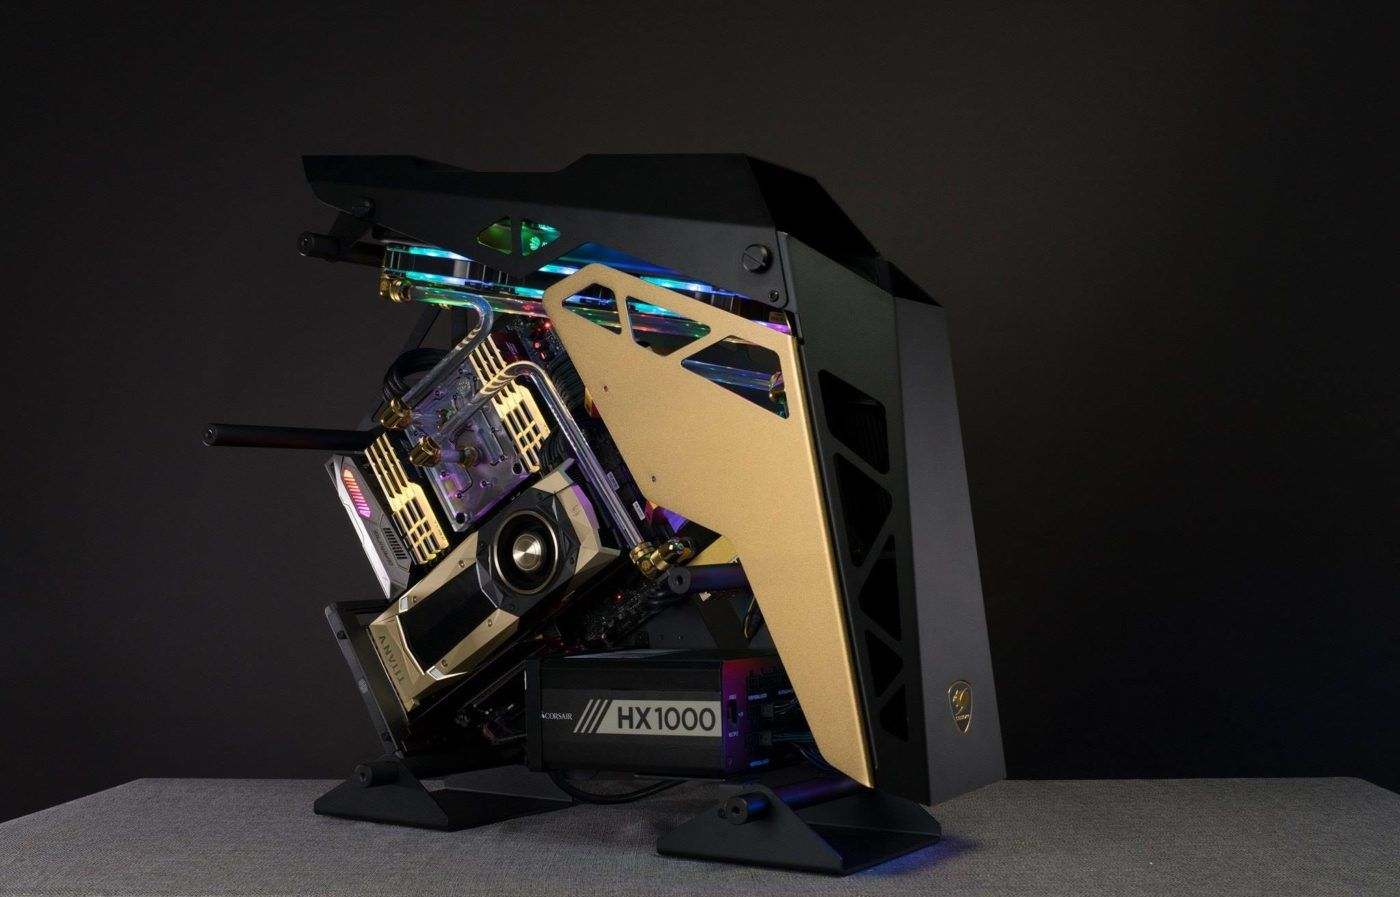 This week for case mod friday we have a build from our friends at